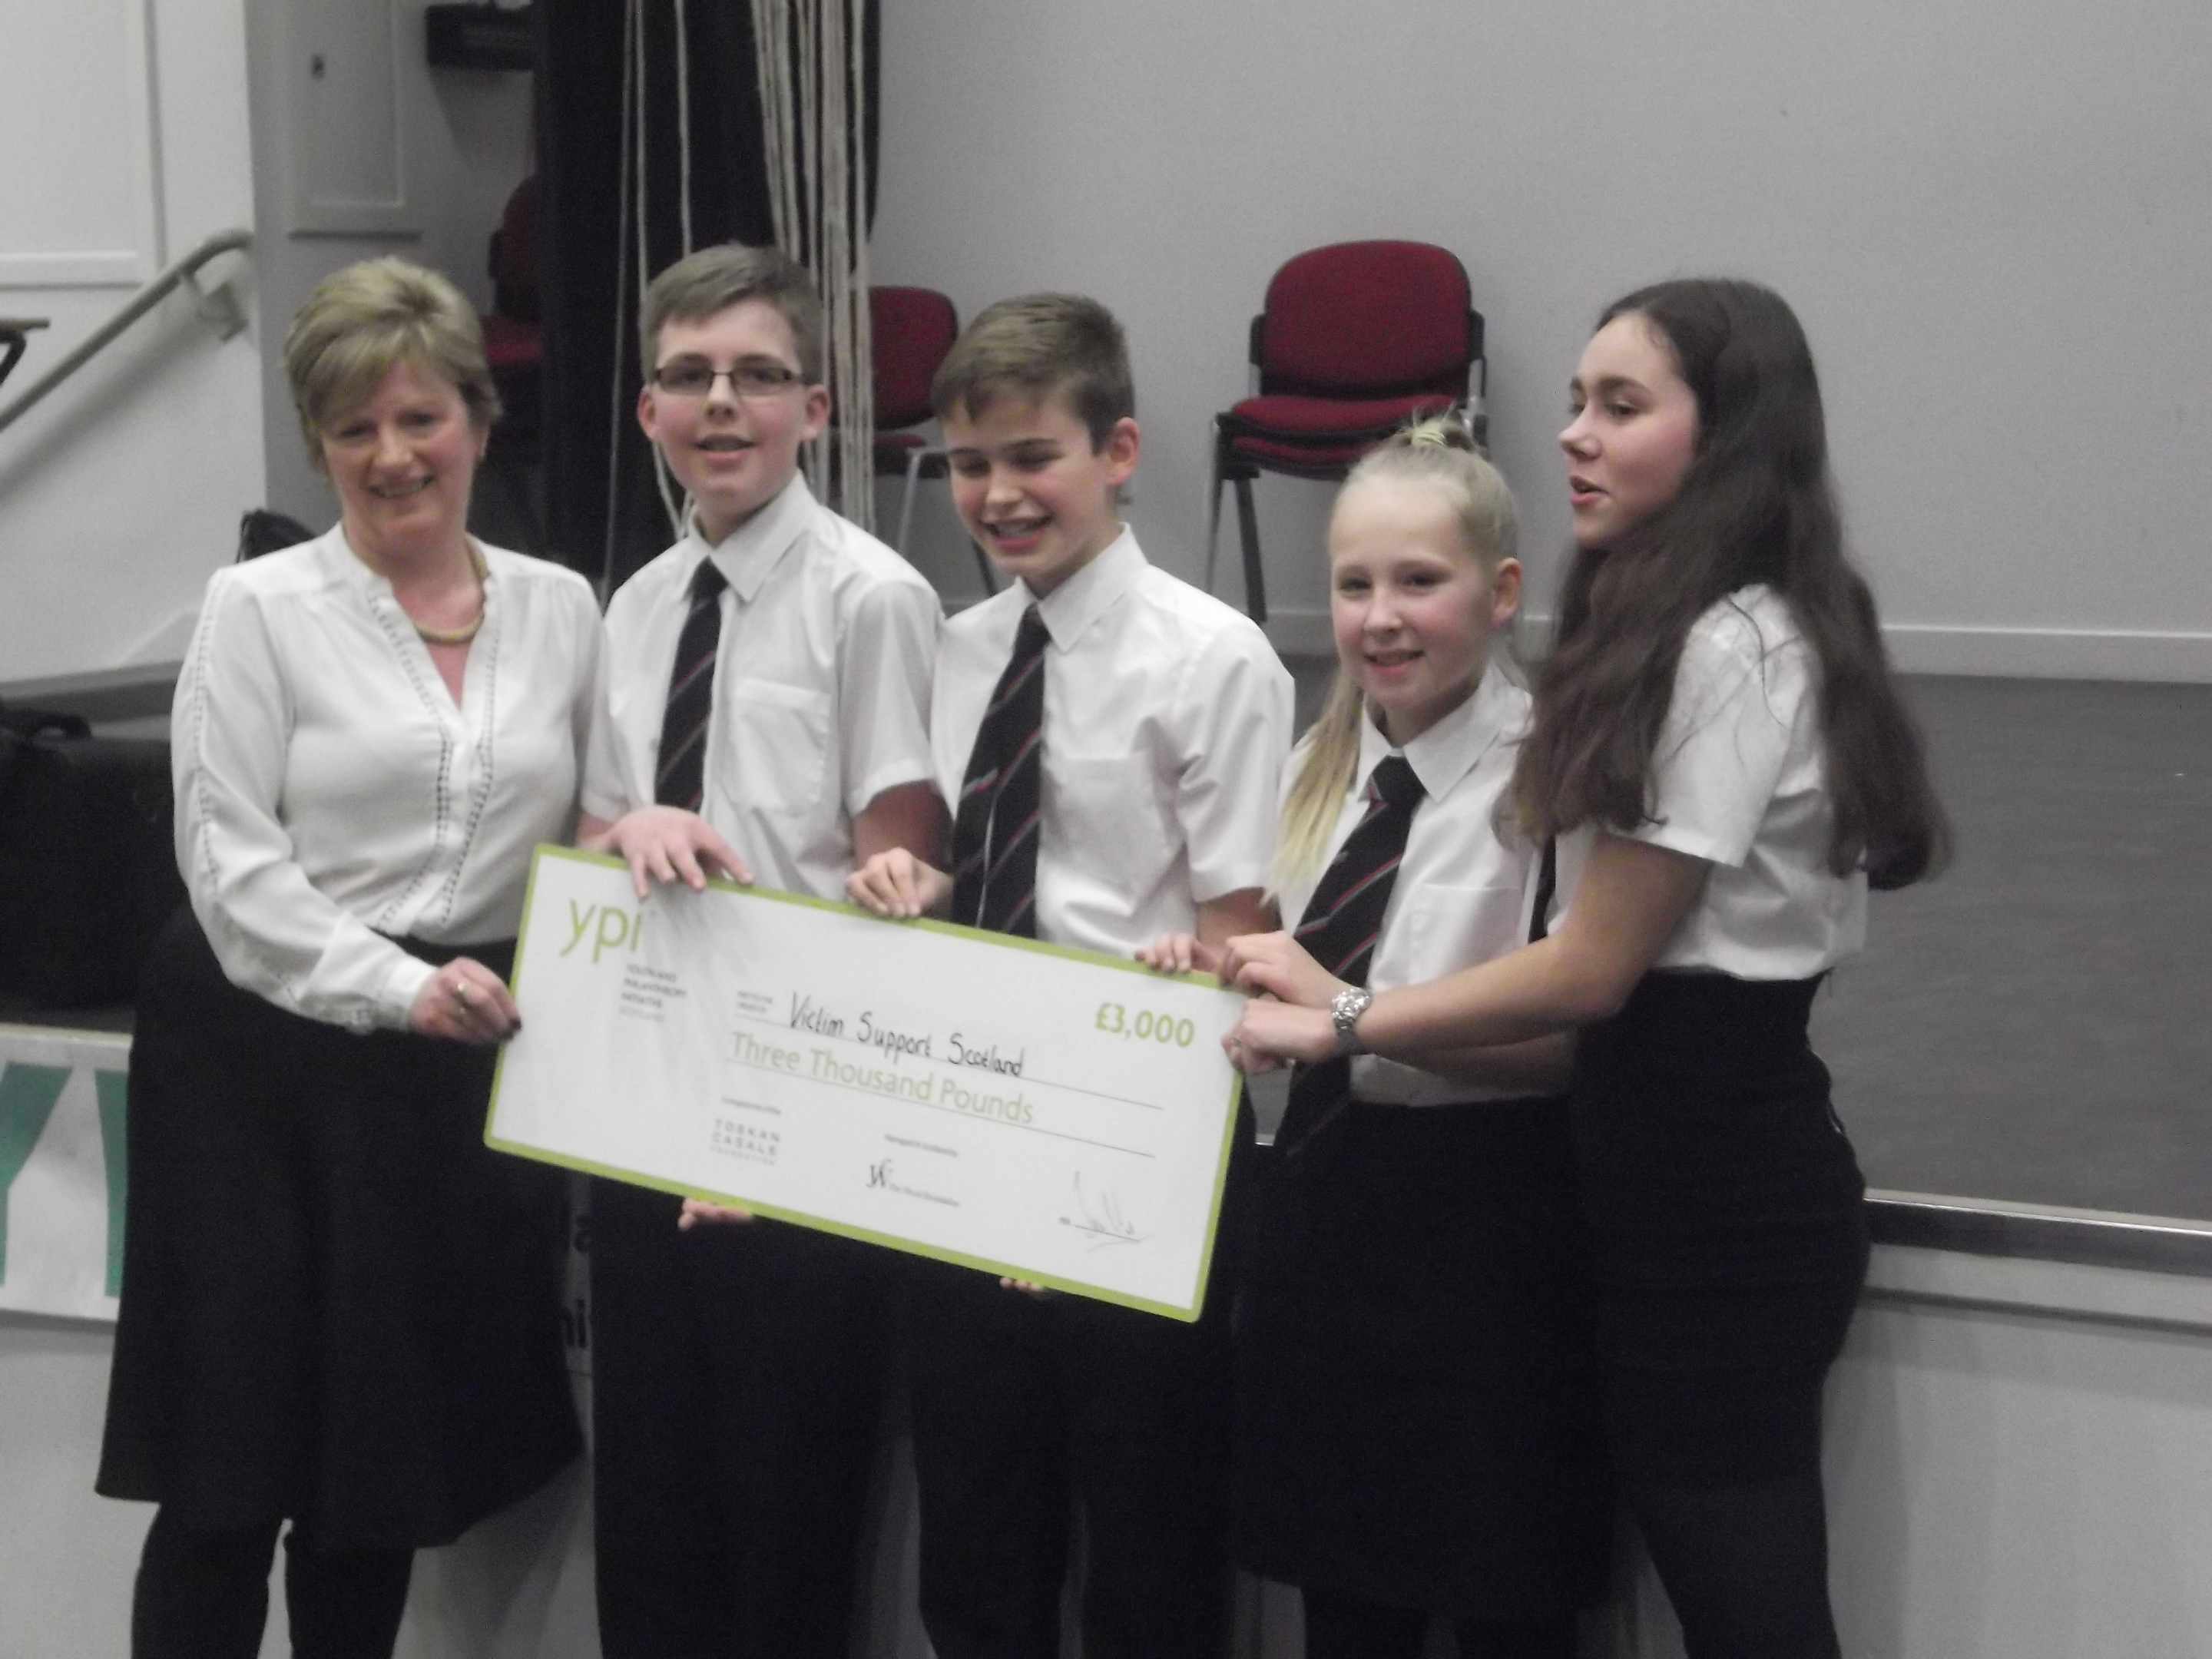 Caption: Portlethen Academy pupils Keir McKechnie, Taylor Lumsden, Calum Graham and Alyssa Hay being handed the cheque for £3,000 for Victim Support Scotland.